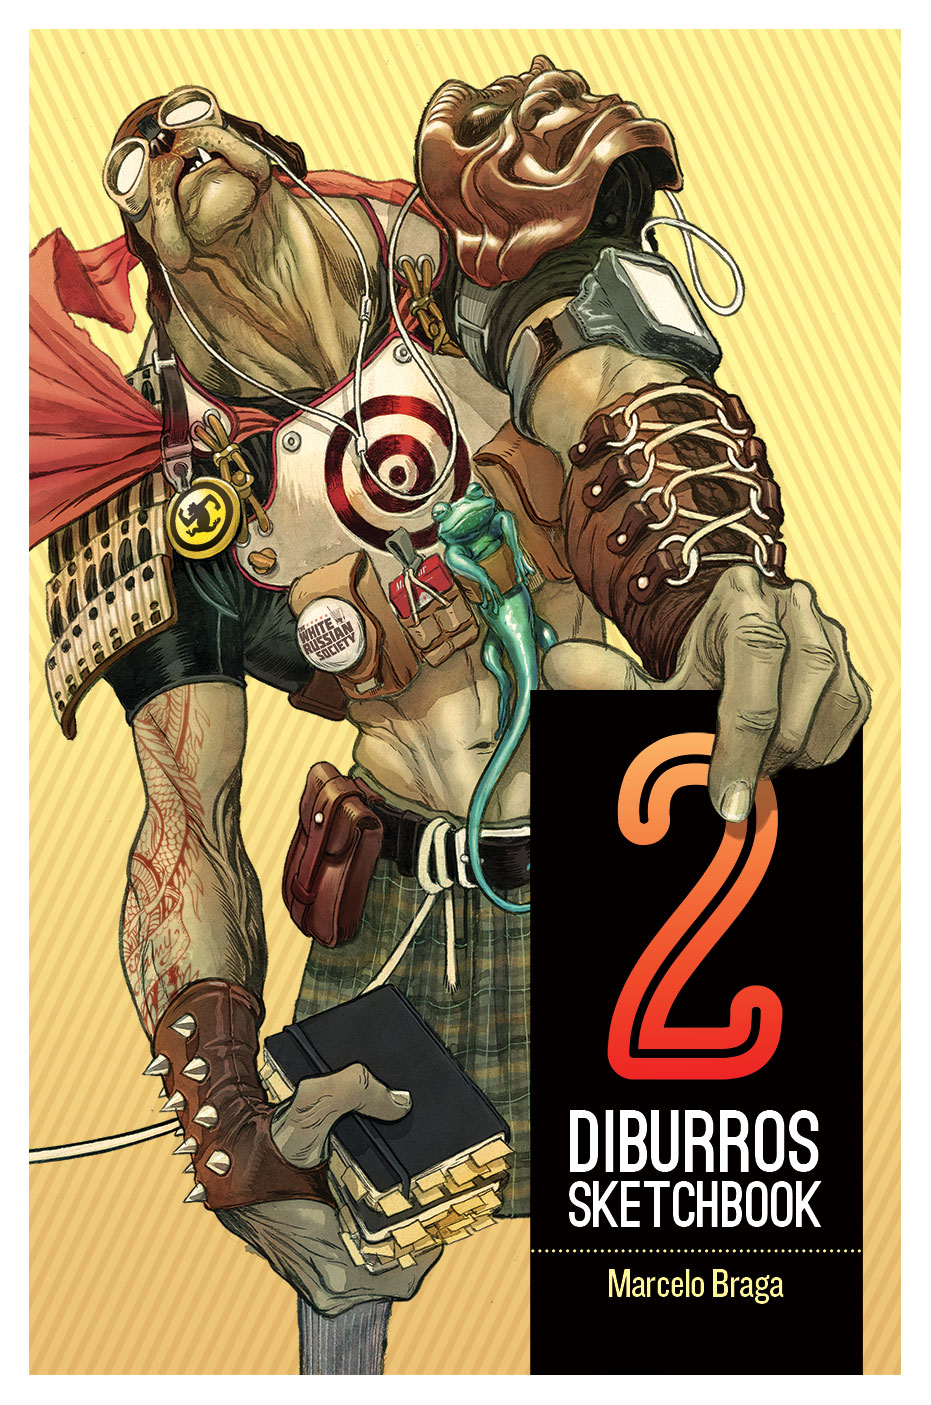 diburros-sketchbook-vol-2-capa